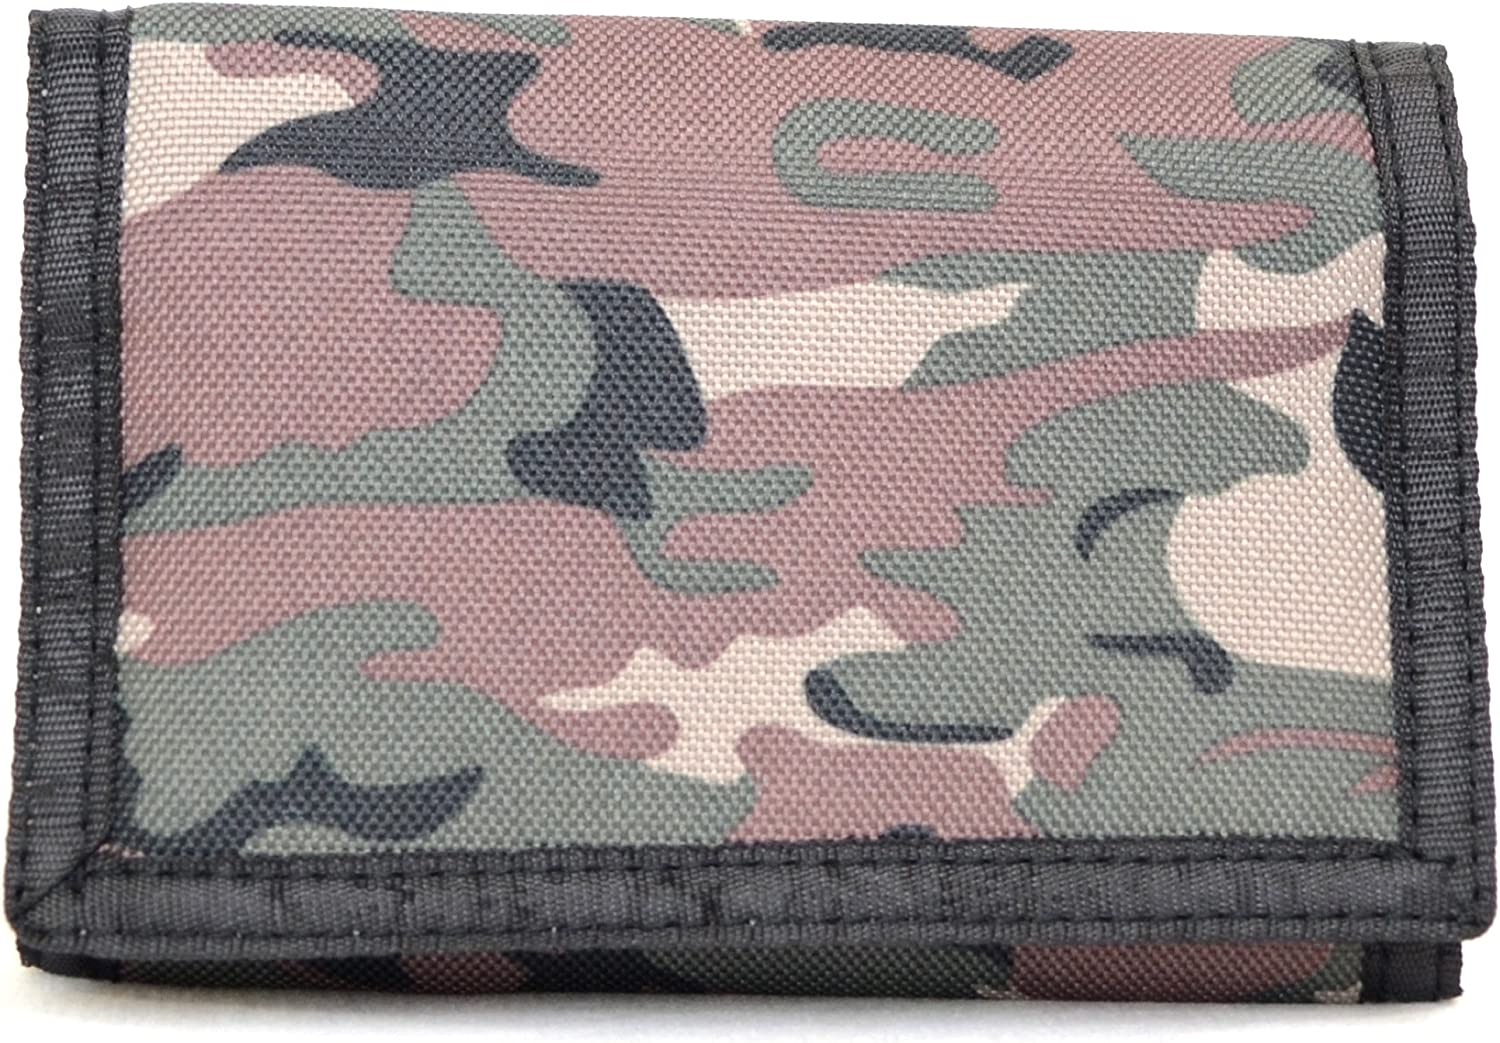 Kids Army Camouflage Wallet Compartment Nylon Trifold Young Boys Camo Hunting